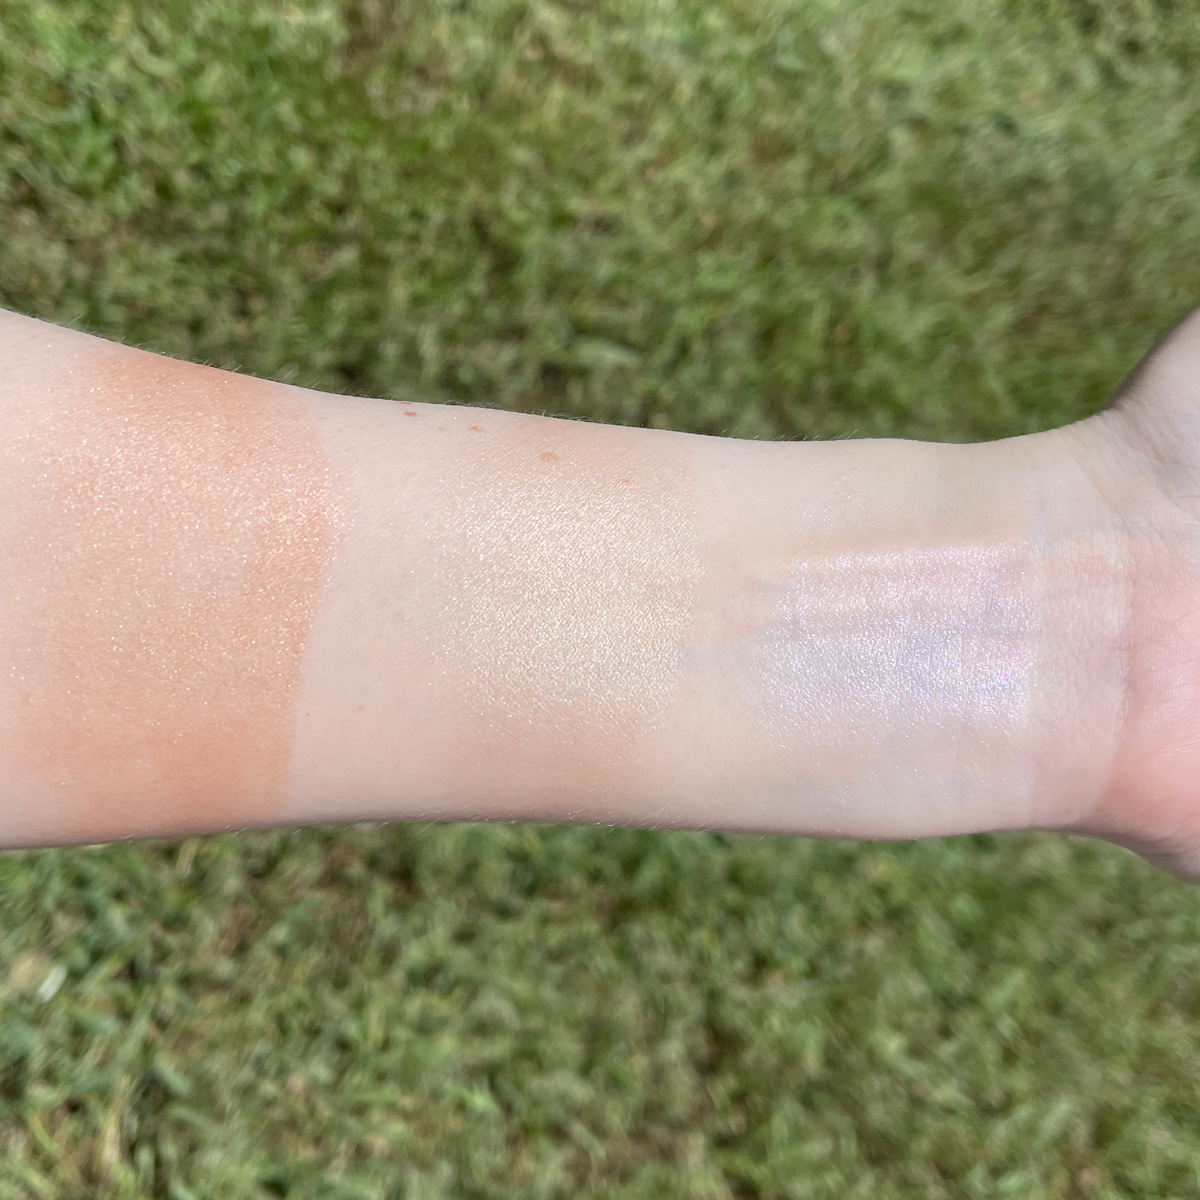 Lime Crime Sunkissed Glimmering Skin Sticks swatches on fair skin